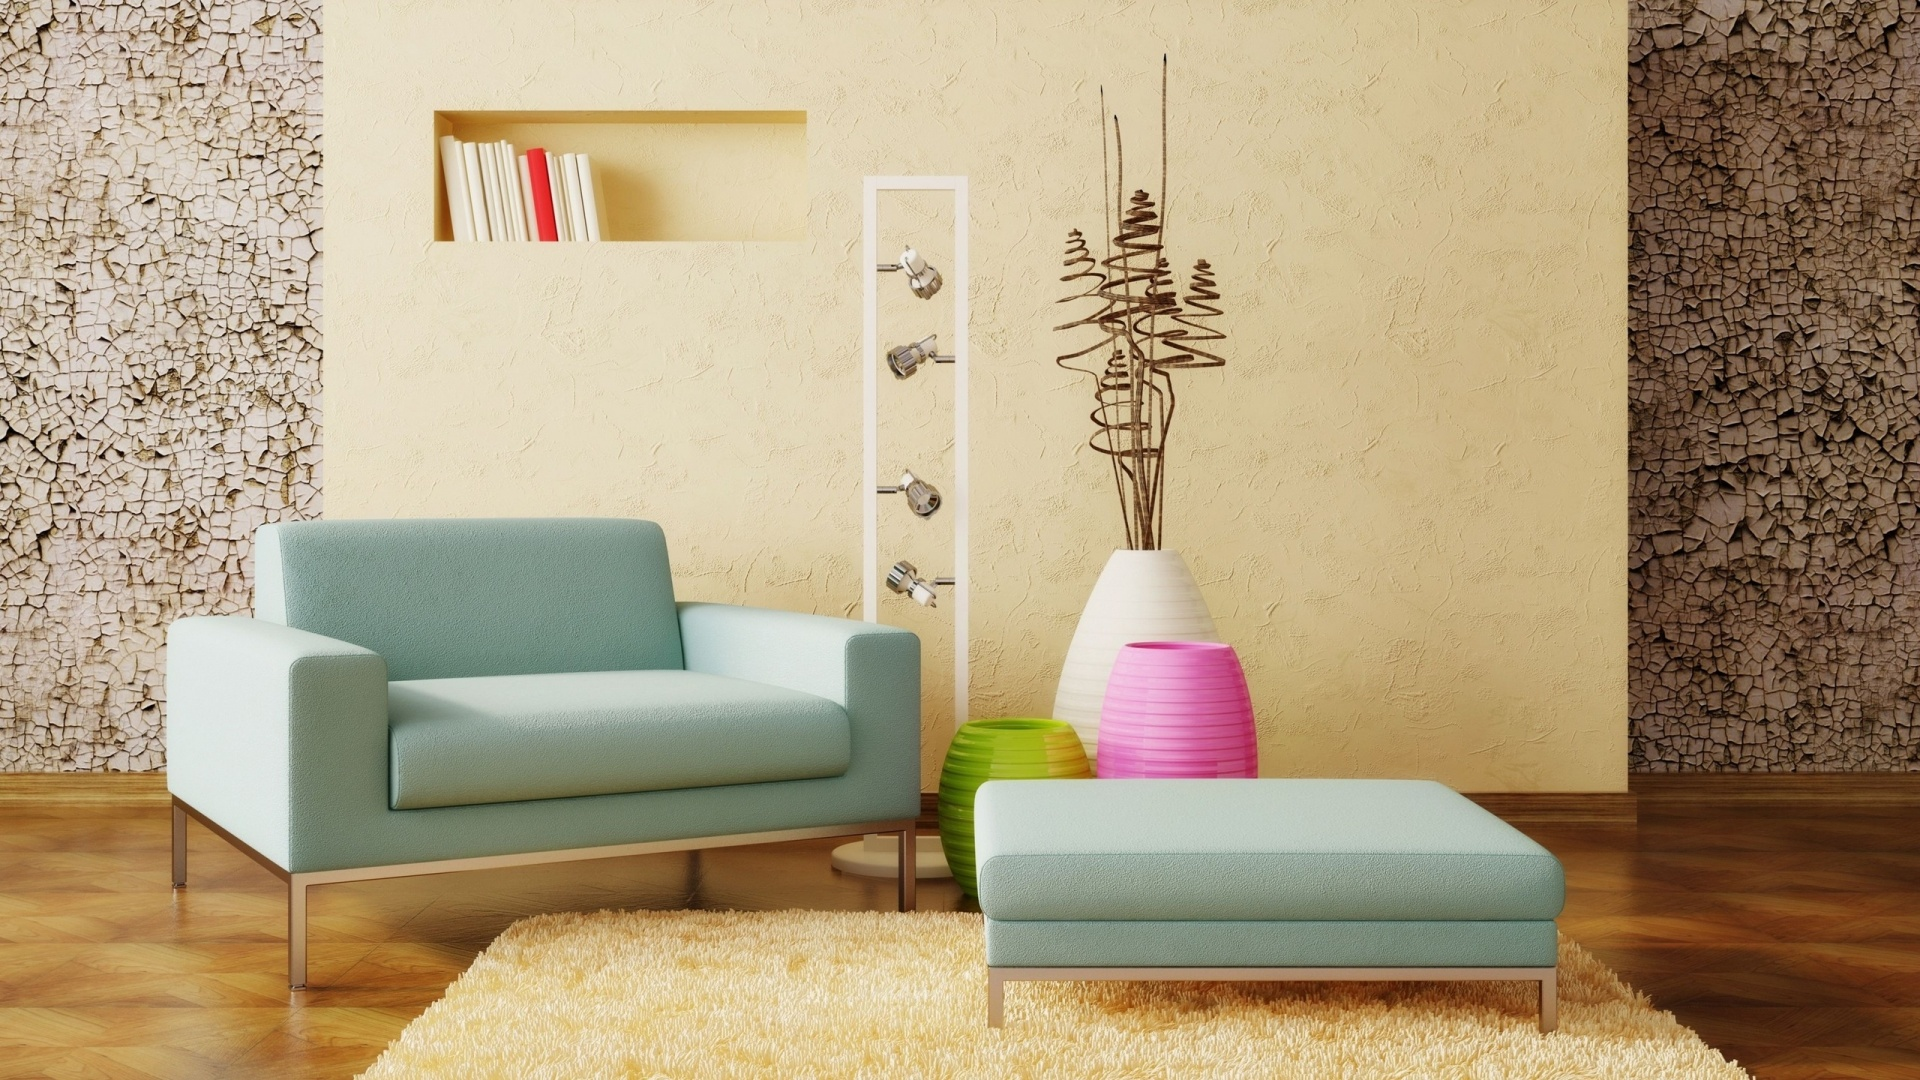 Wallpapers Home Decor